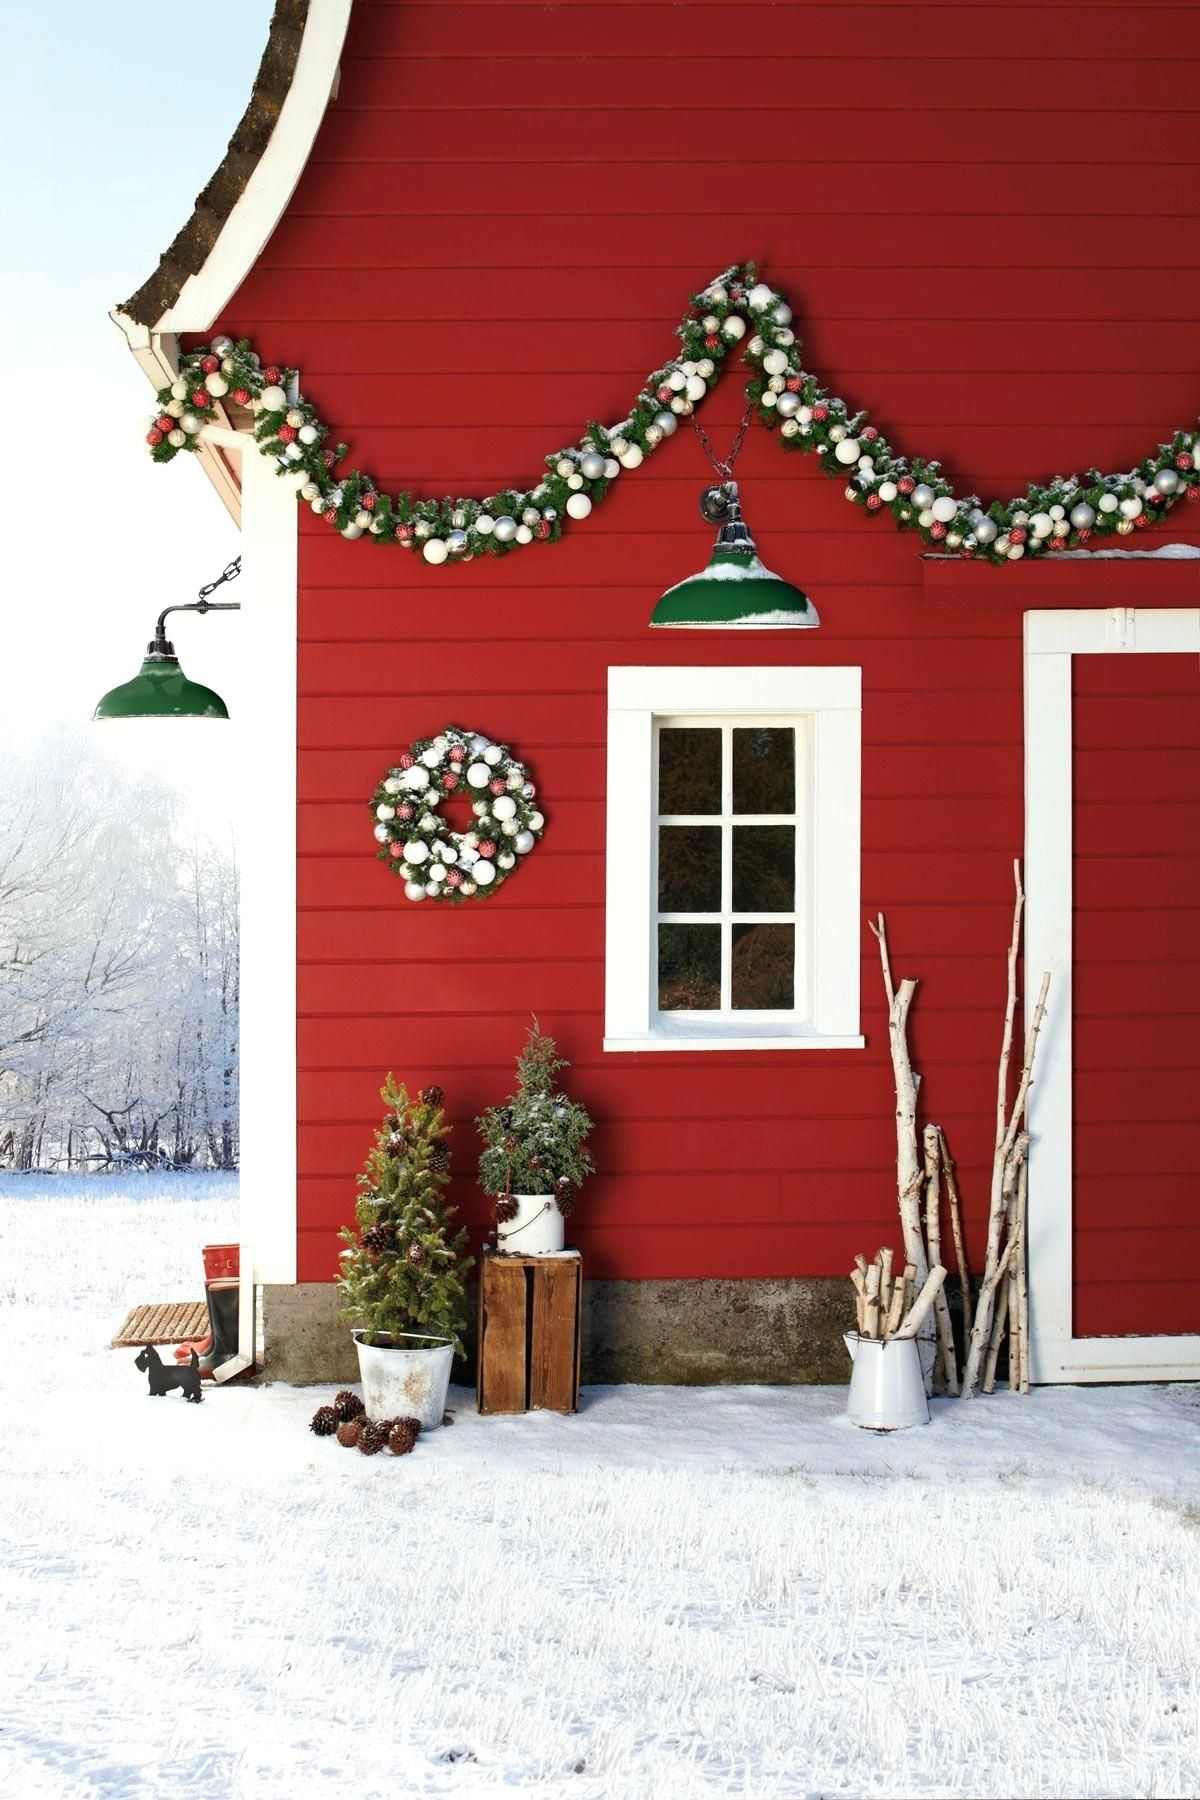 Astonishing Holiday Decorating Ideas For Window Boxes Outdoor Holiday Decor Outdoor Christmas Outdoor Christmas Decorations